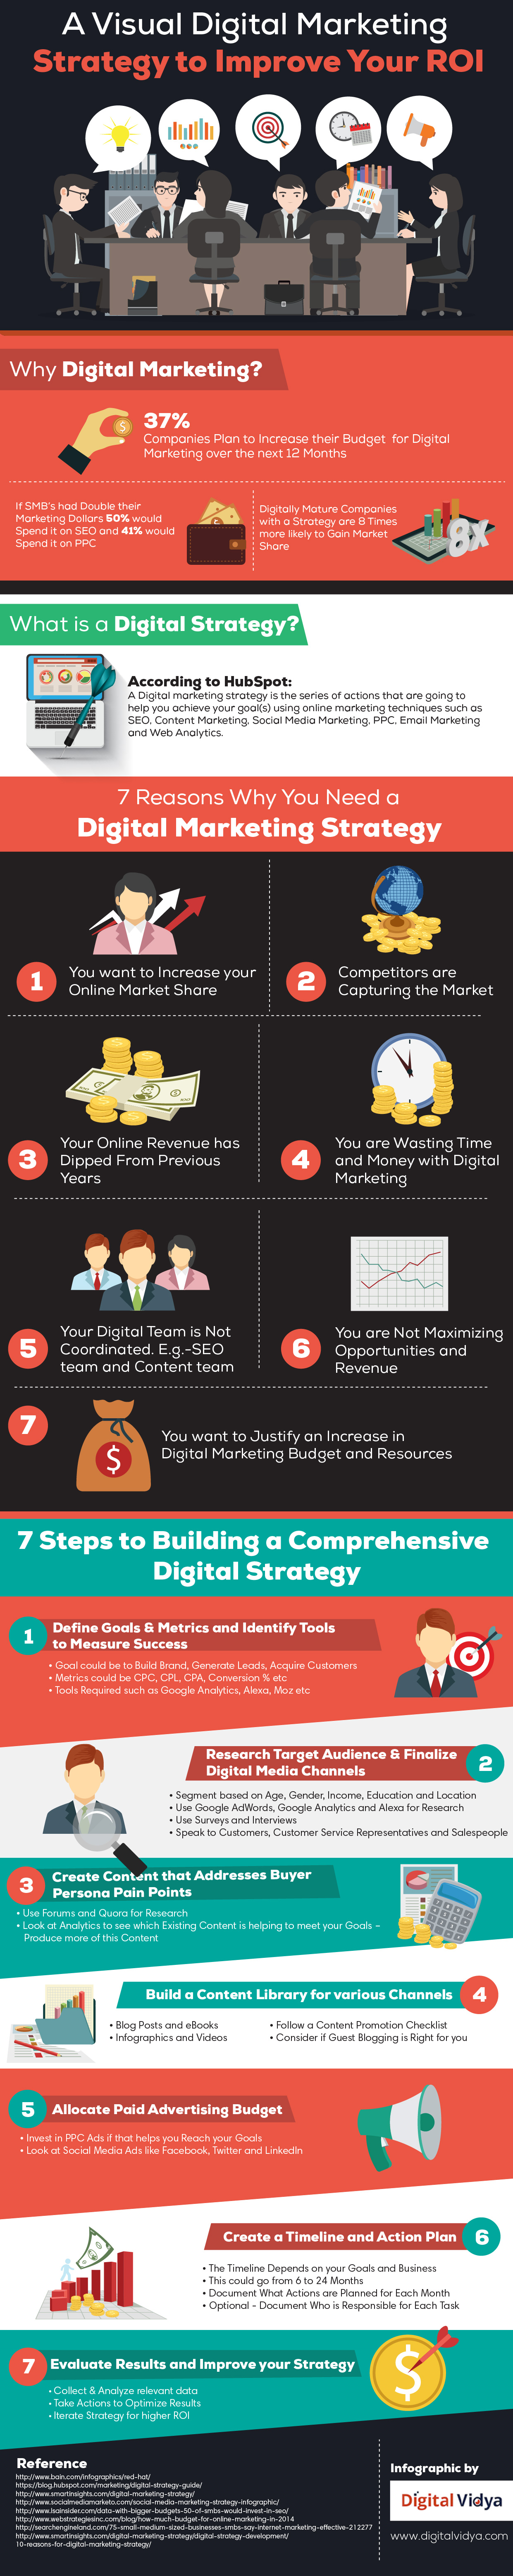 7 Steps To Building A Comprehensive Digital Marketing Strategy [Infographic]